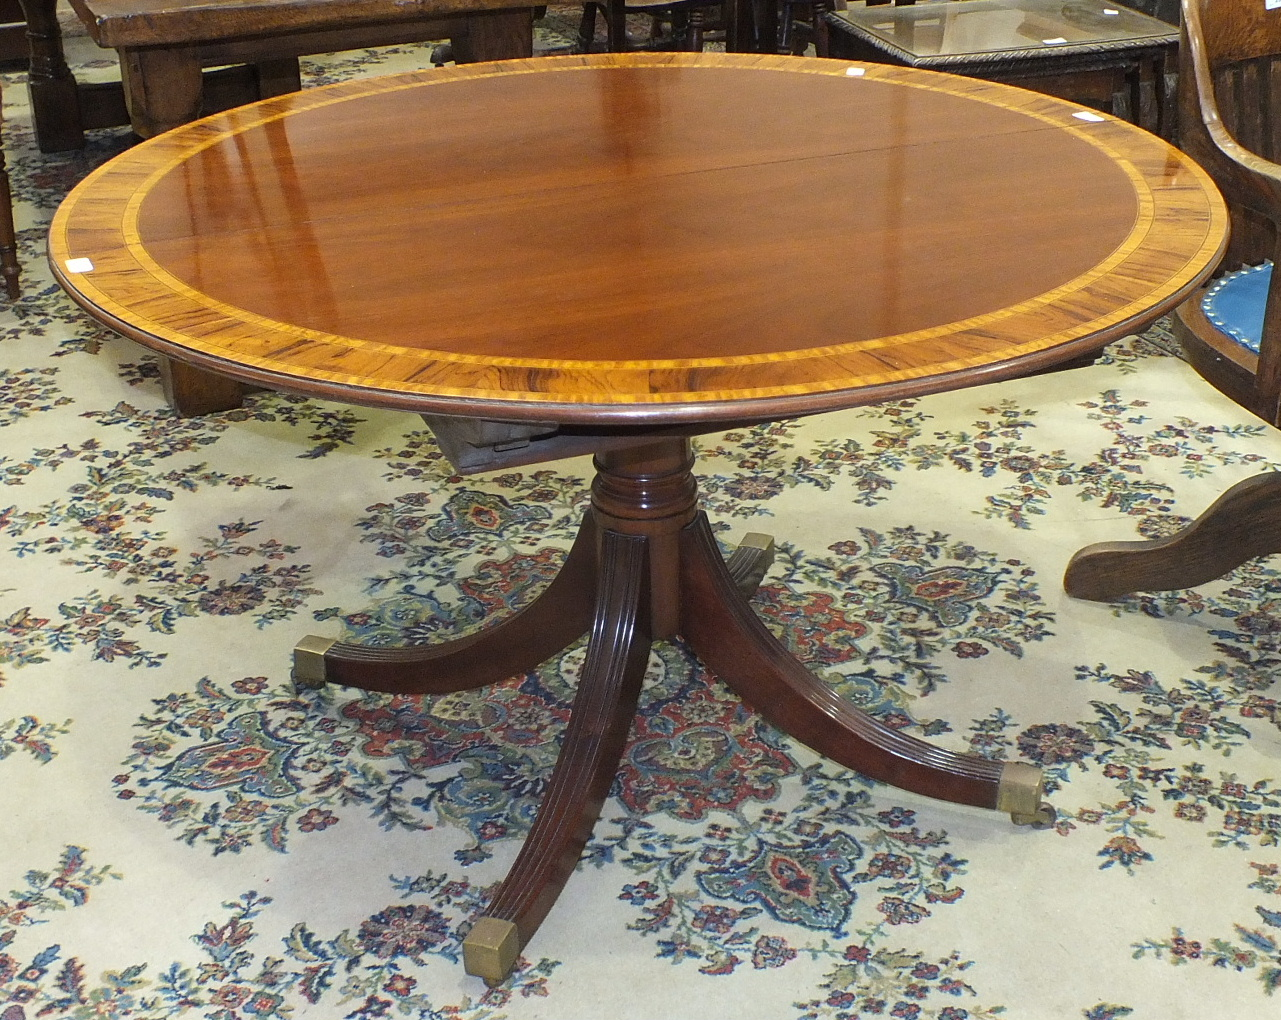 Lot 4 - A reproduction mahogany circular dining table with inlaid and cross-banded decoration, on single